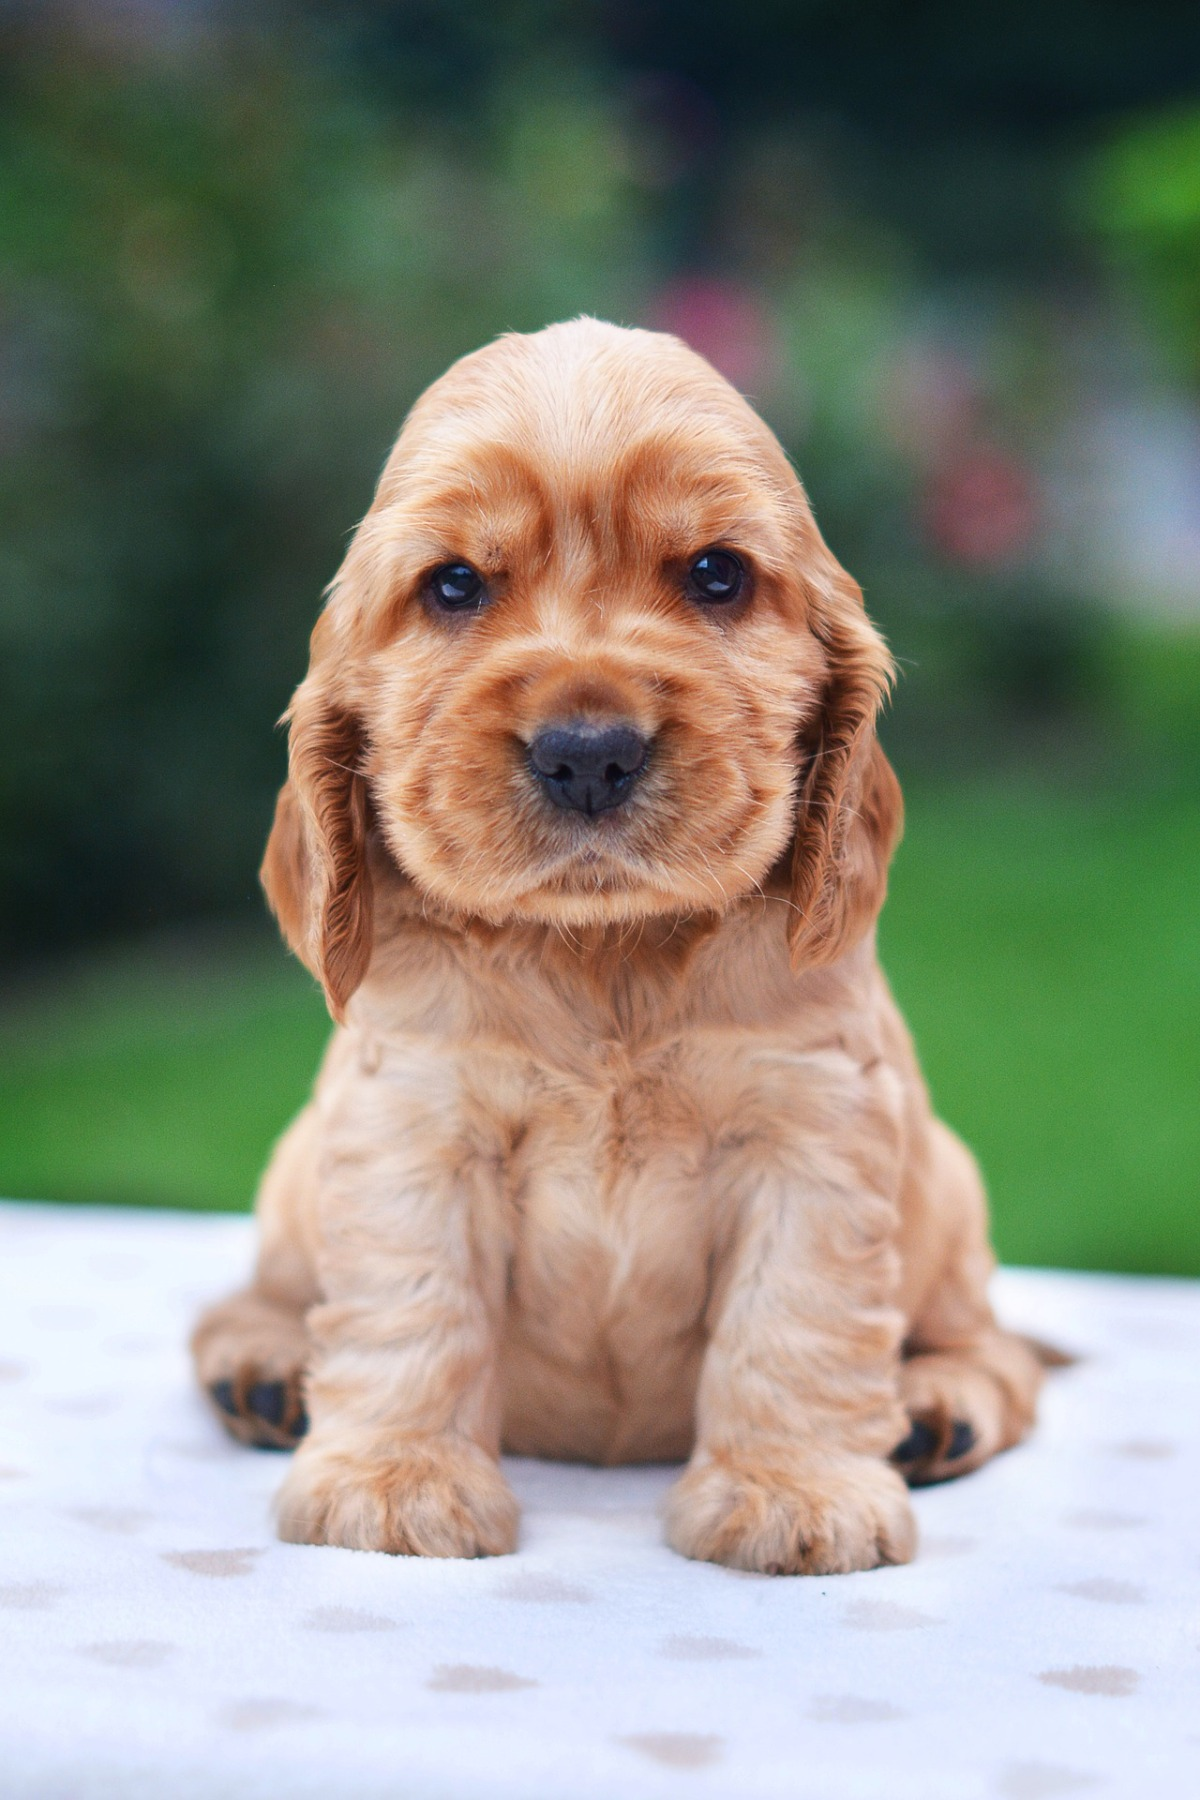 Golden english cocker spaniel puppy / facts about english cocker spaniels / grooming, ear problems, cockers shed, cocker spaniel smell / puppy advice and tips / first puppy / how to find a cocker spaniel puppy / first published on Perfect cocker spaniel blog (C)